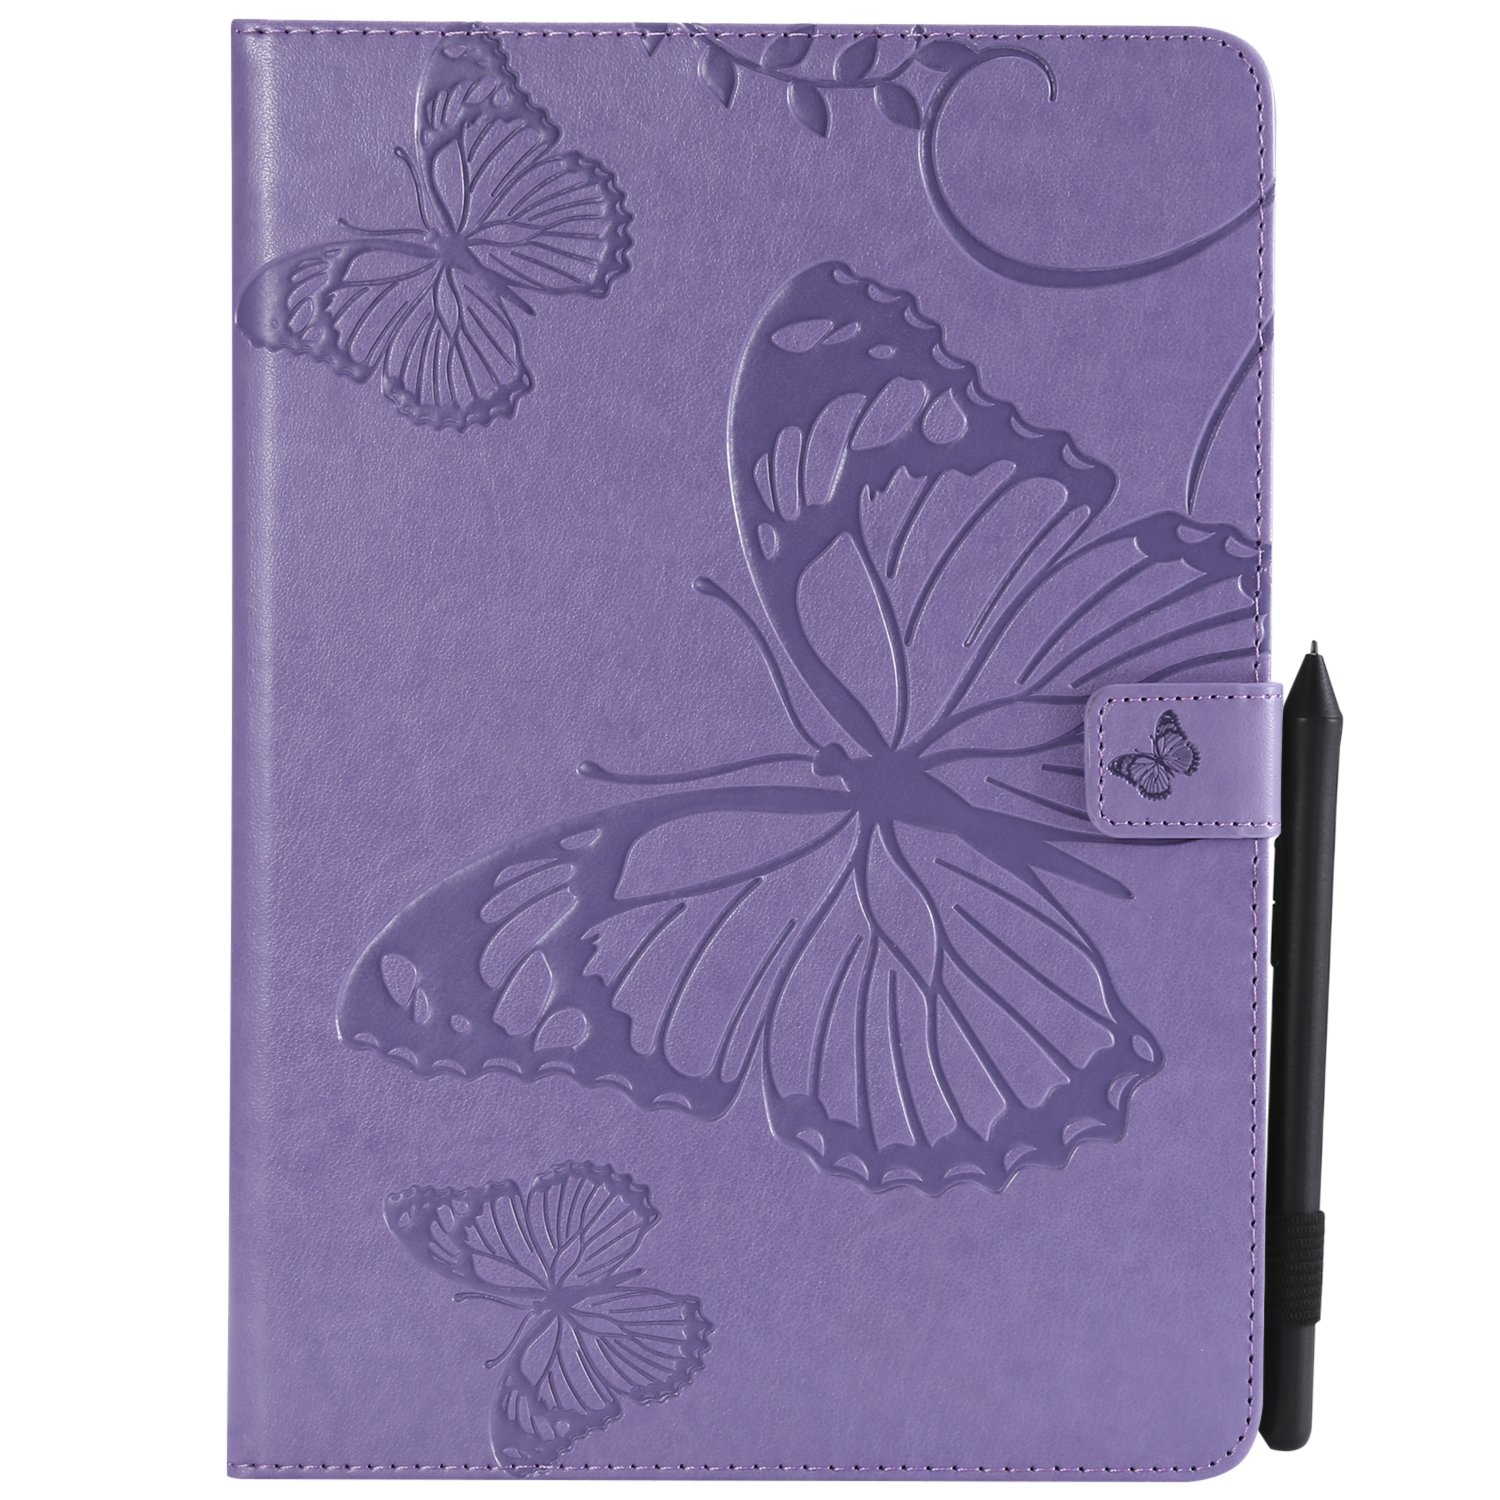 Bear Village iPad Pro 9.7 Inch Case, Butterfly Embossed Anti Scratch Shell with Adjust Stand, Smart Stand PU Leather Case for Apple iPad Pro 9.7 Inch, Purple by Bear Village